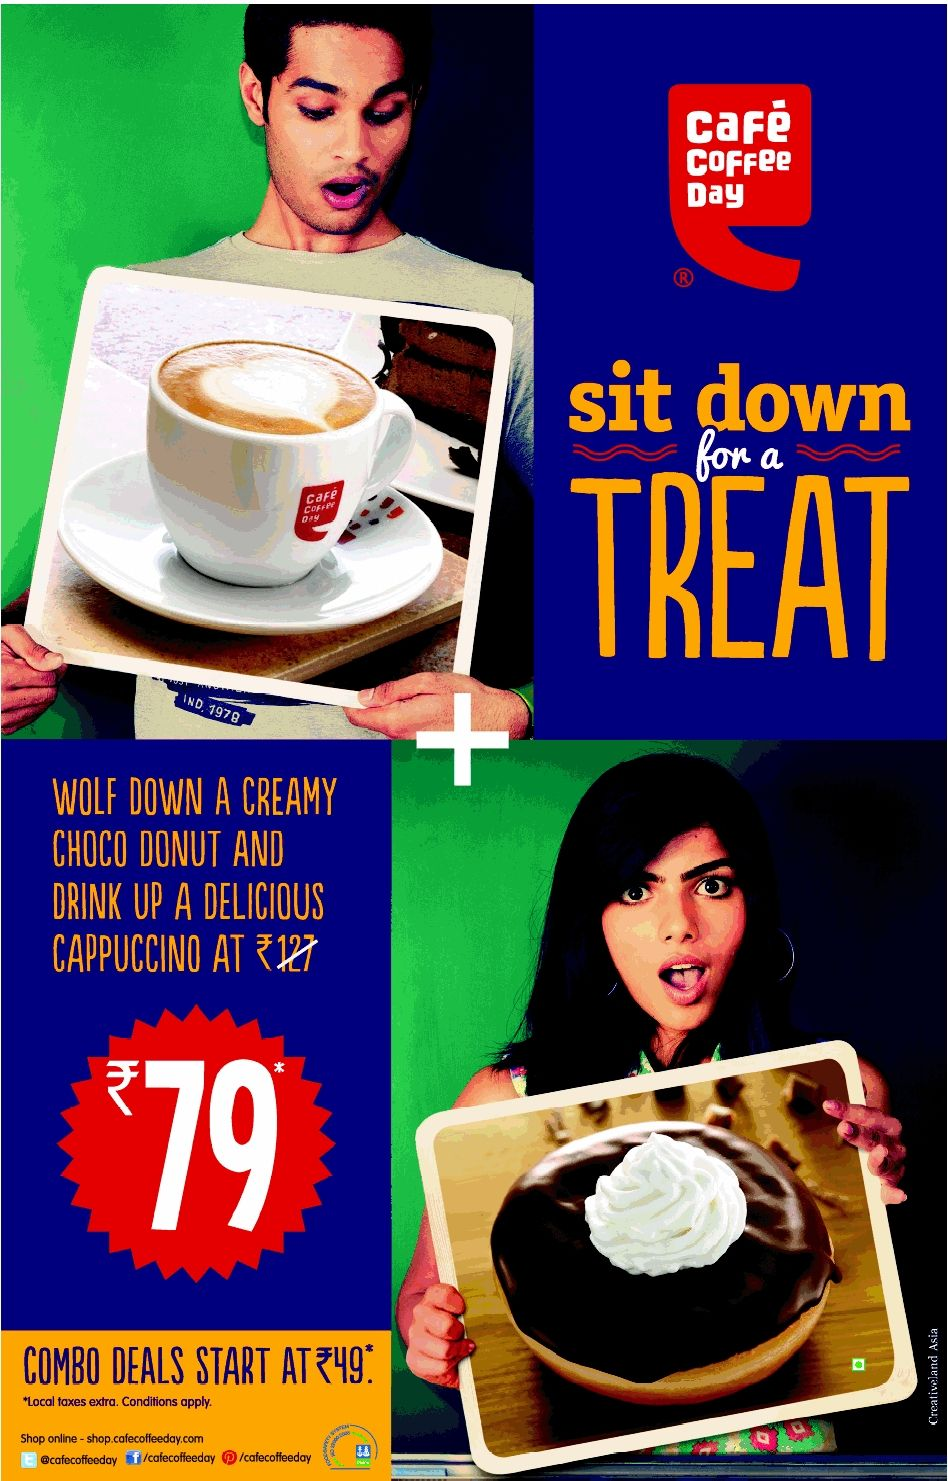 Cafe Coffee Day Enjoy Creamy Choco Donut + Delicious